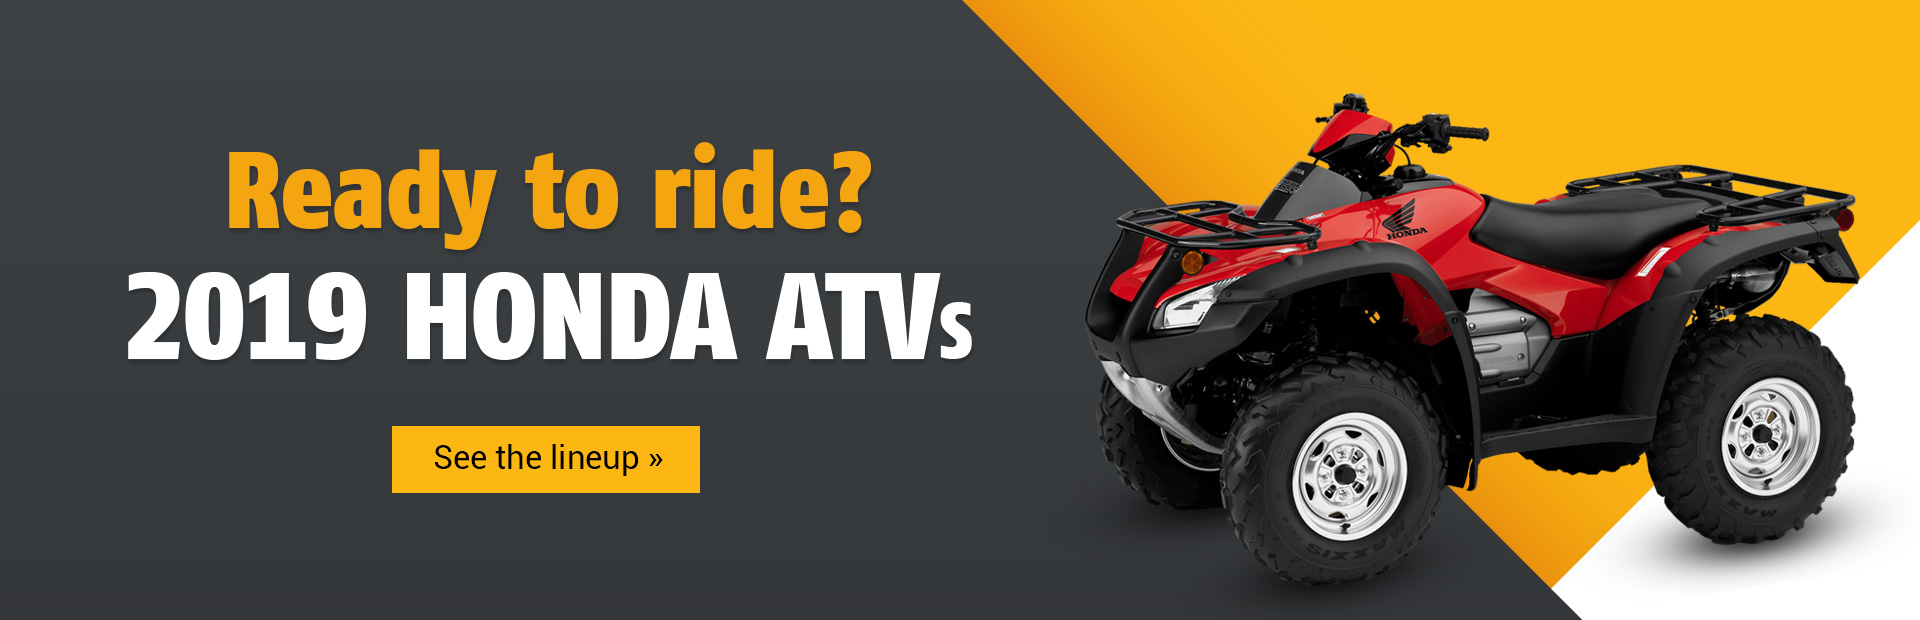 ... 2019 Honda ATVs: Click Here To View The Models.